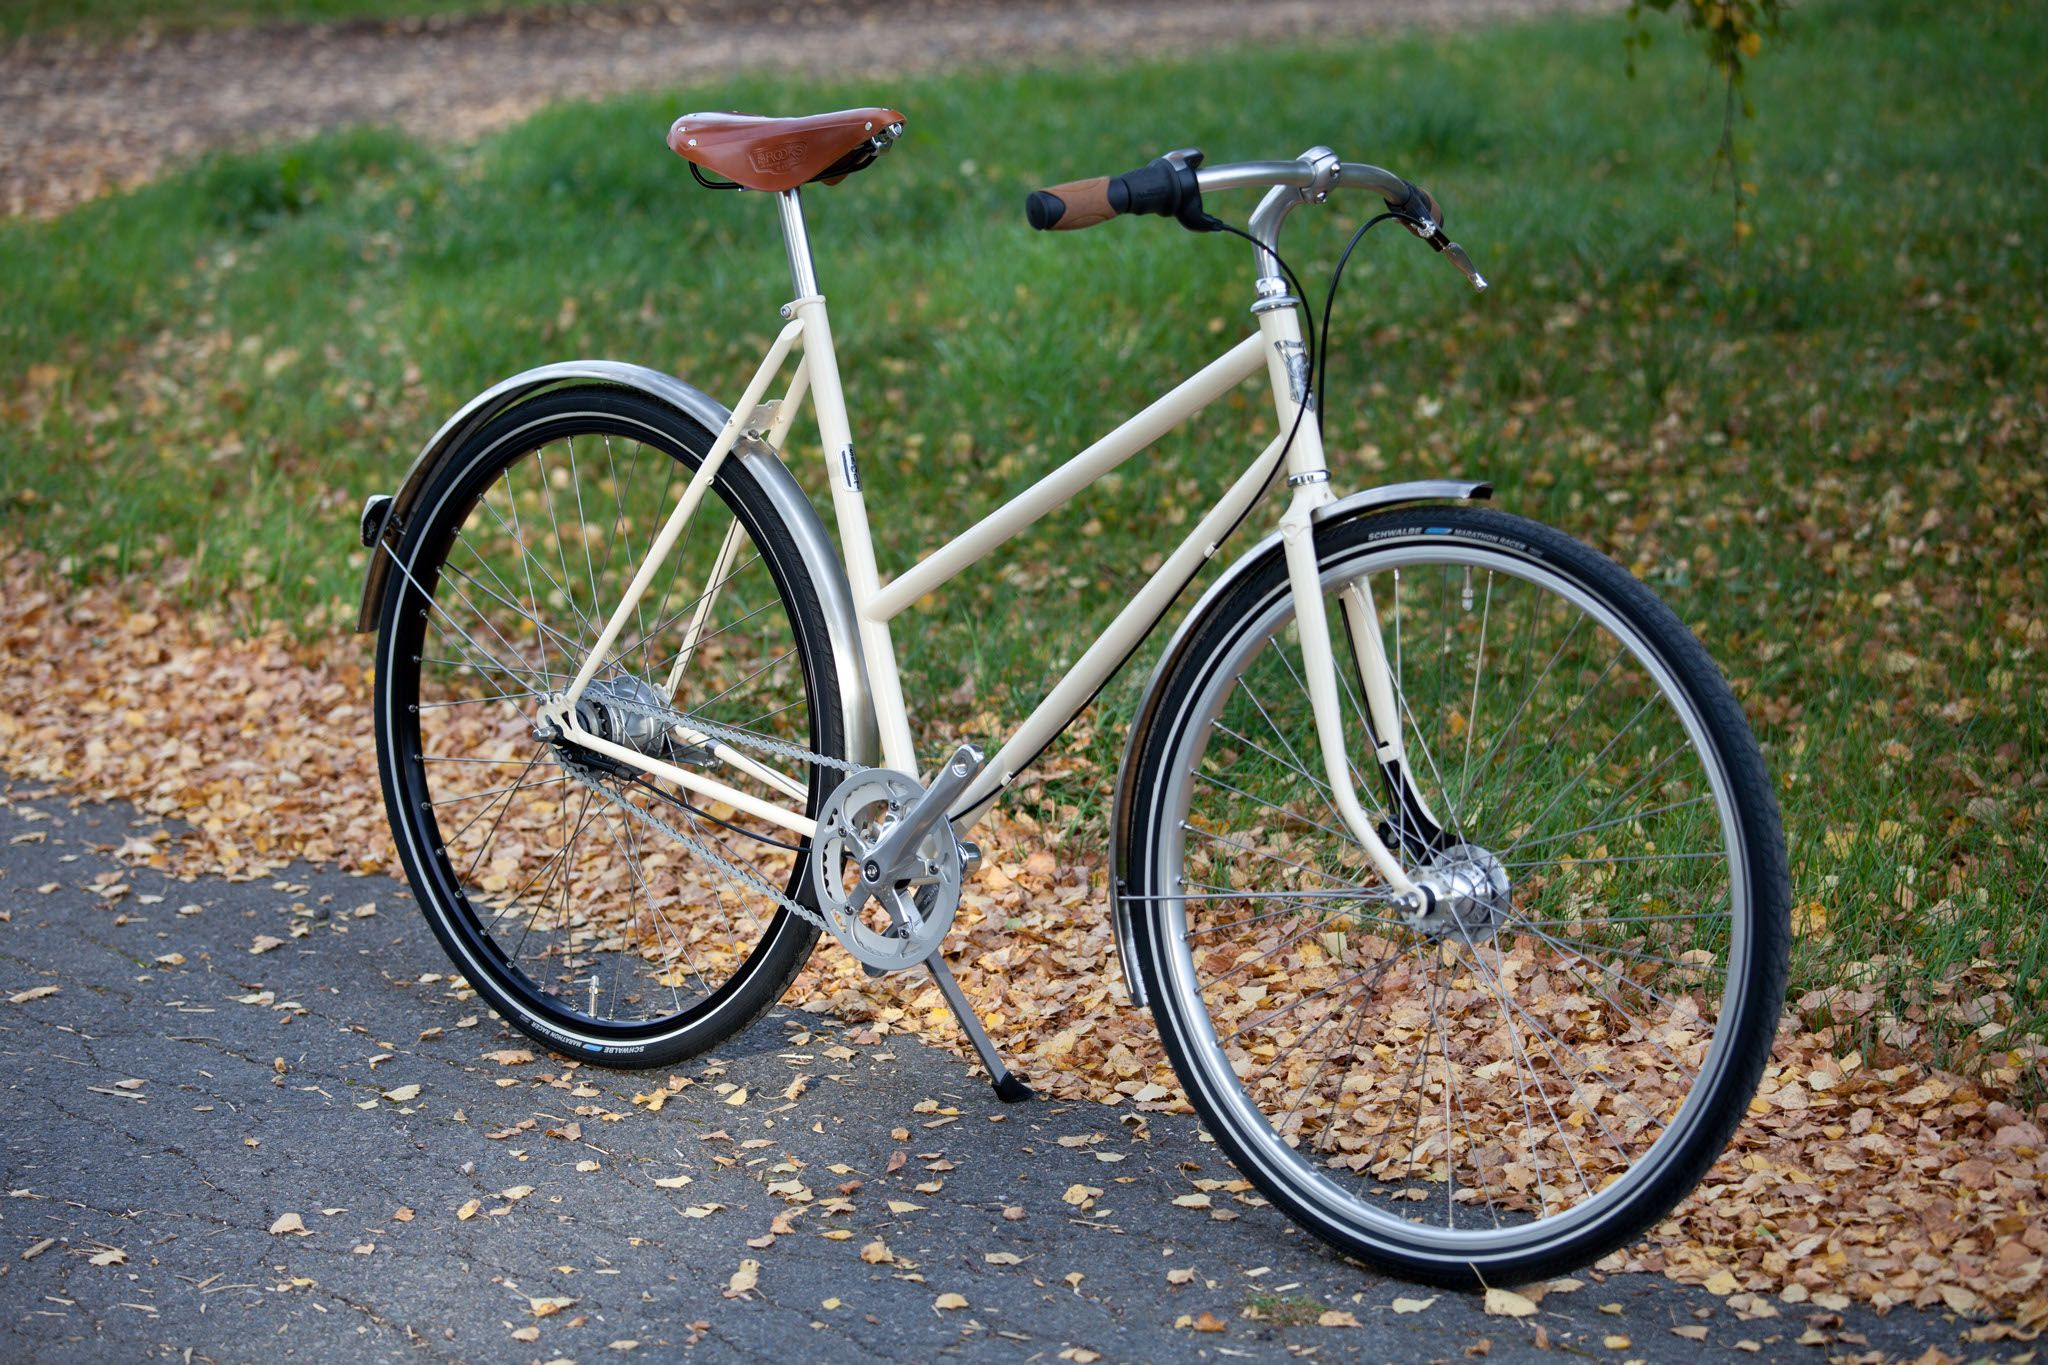 Pin By Bruno Muhlemann On Velolove Bicycle Vehicles